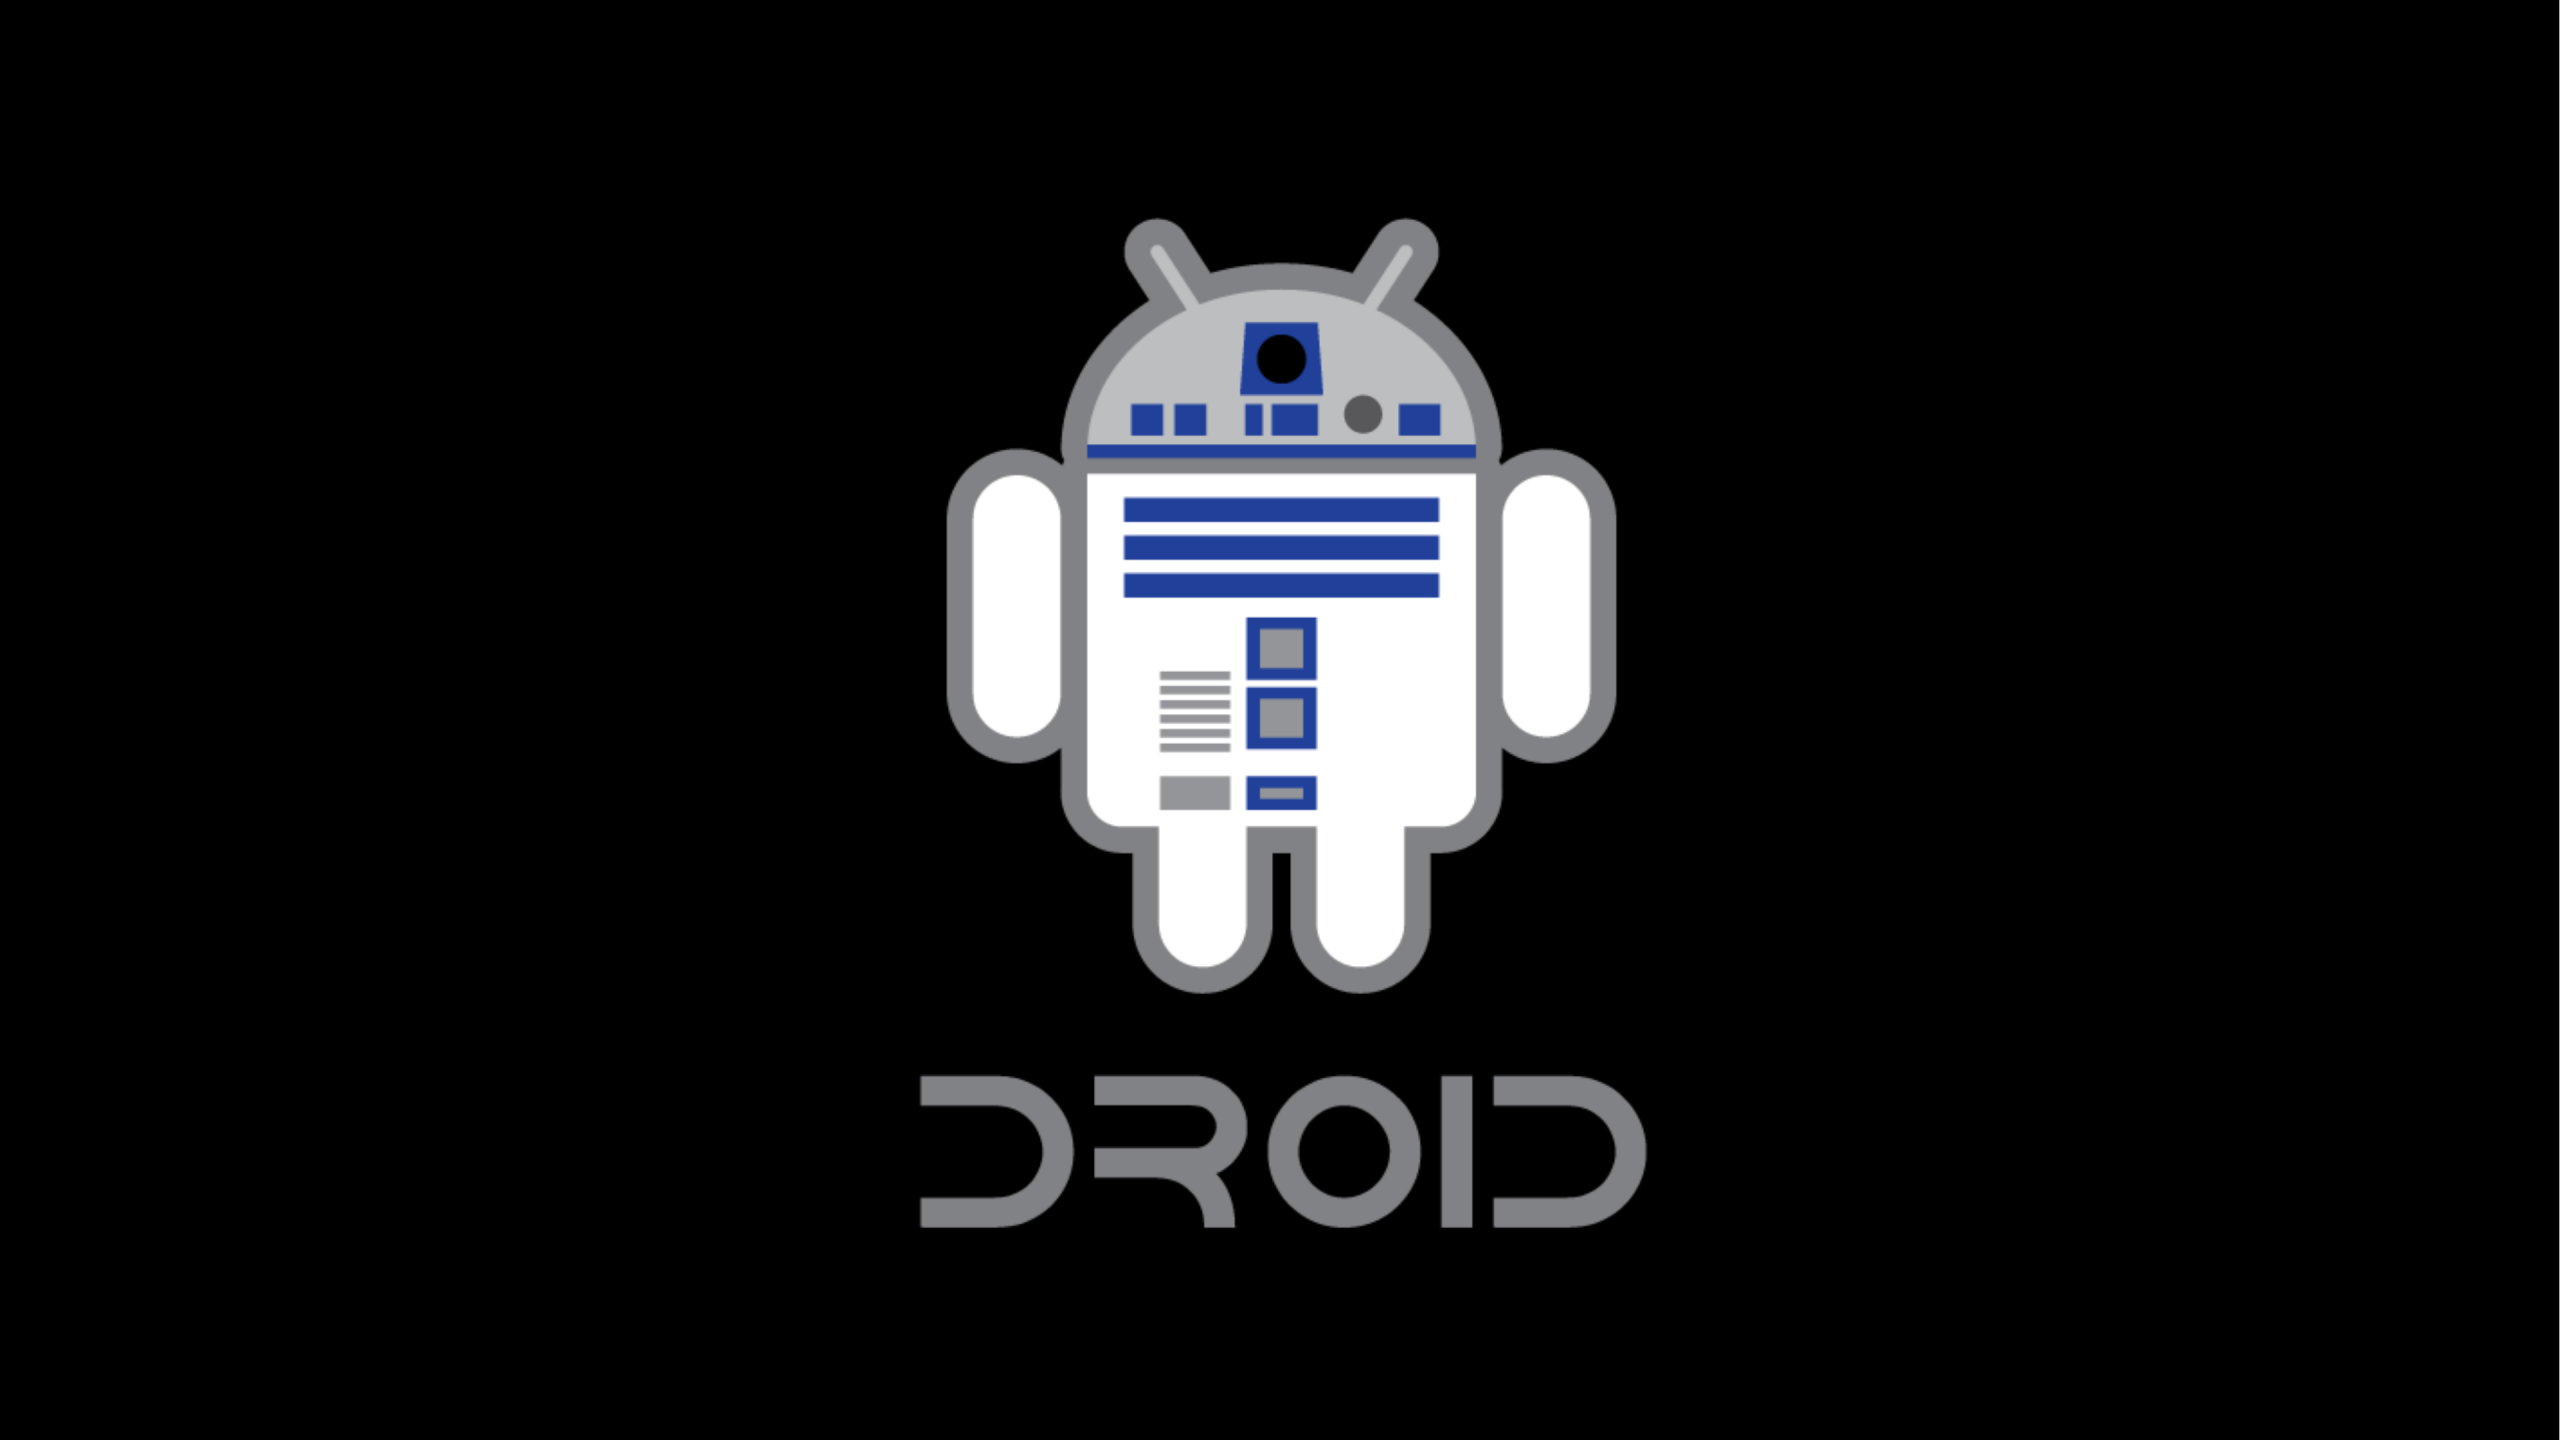 star wars android logo 4k wallpaper 2560x1440